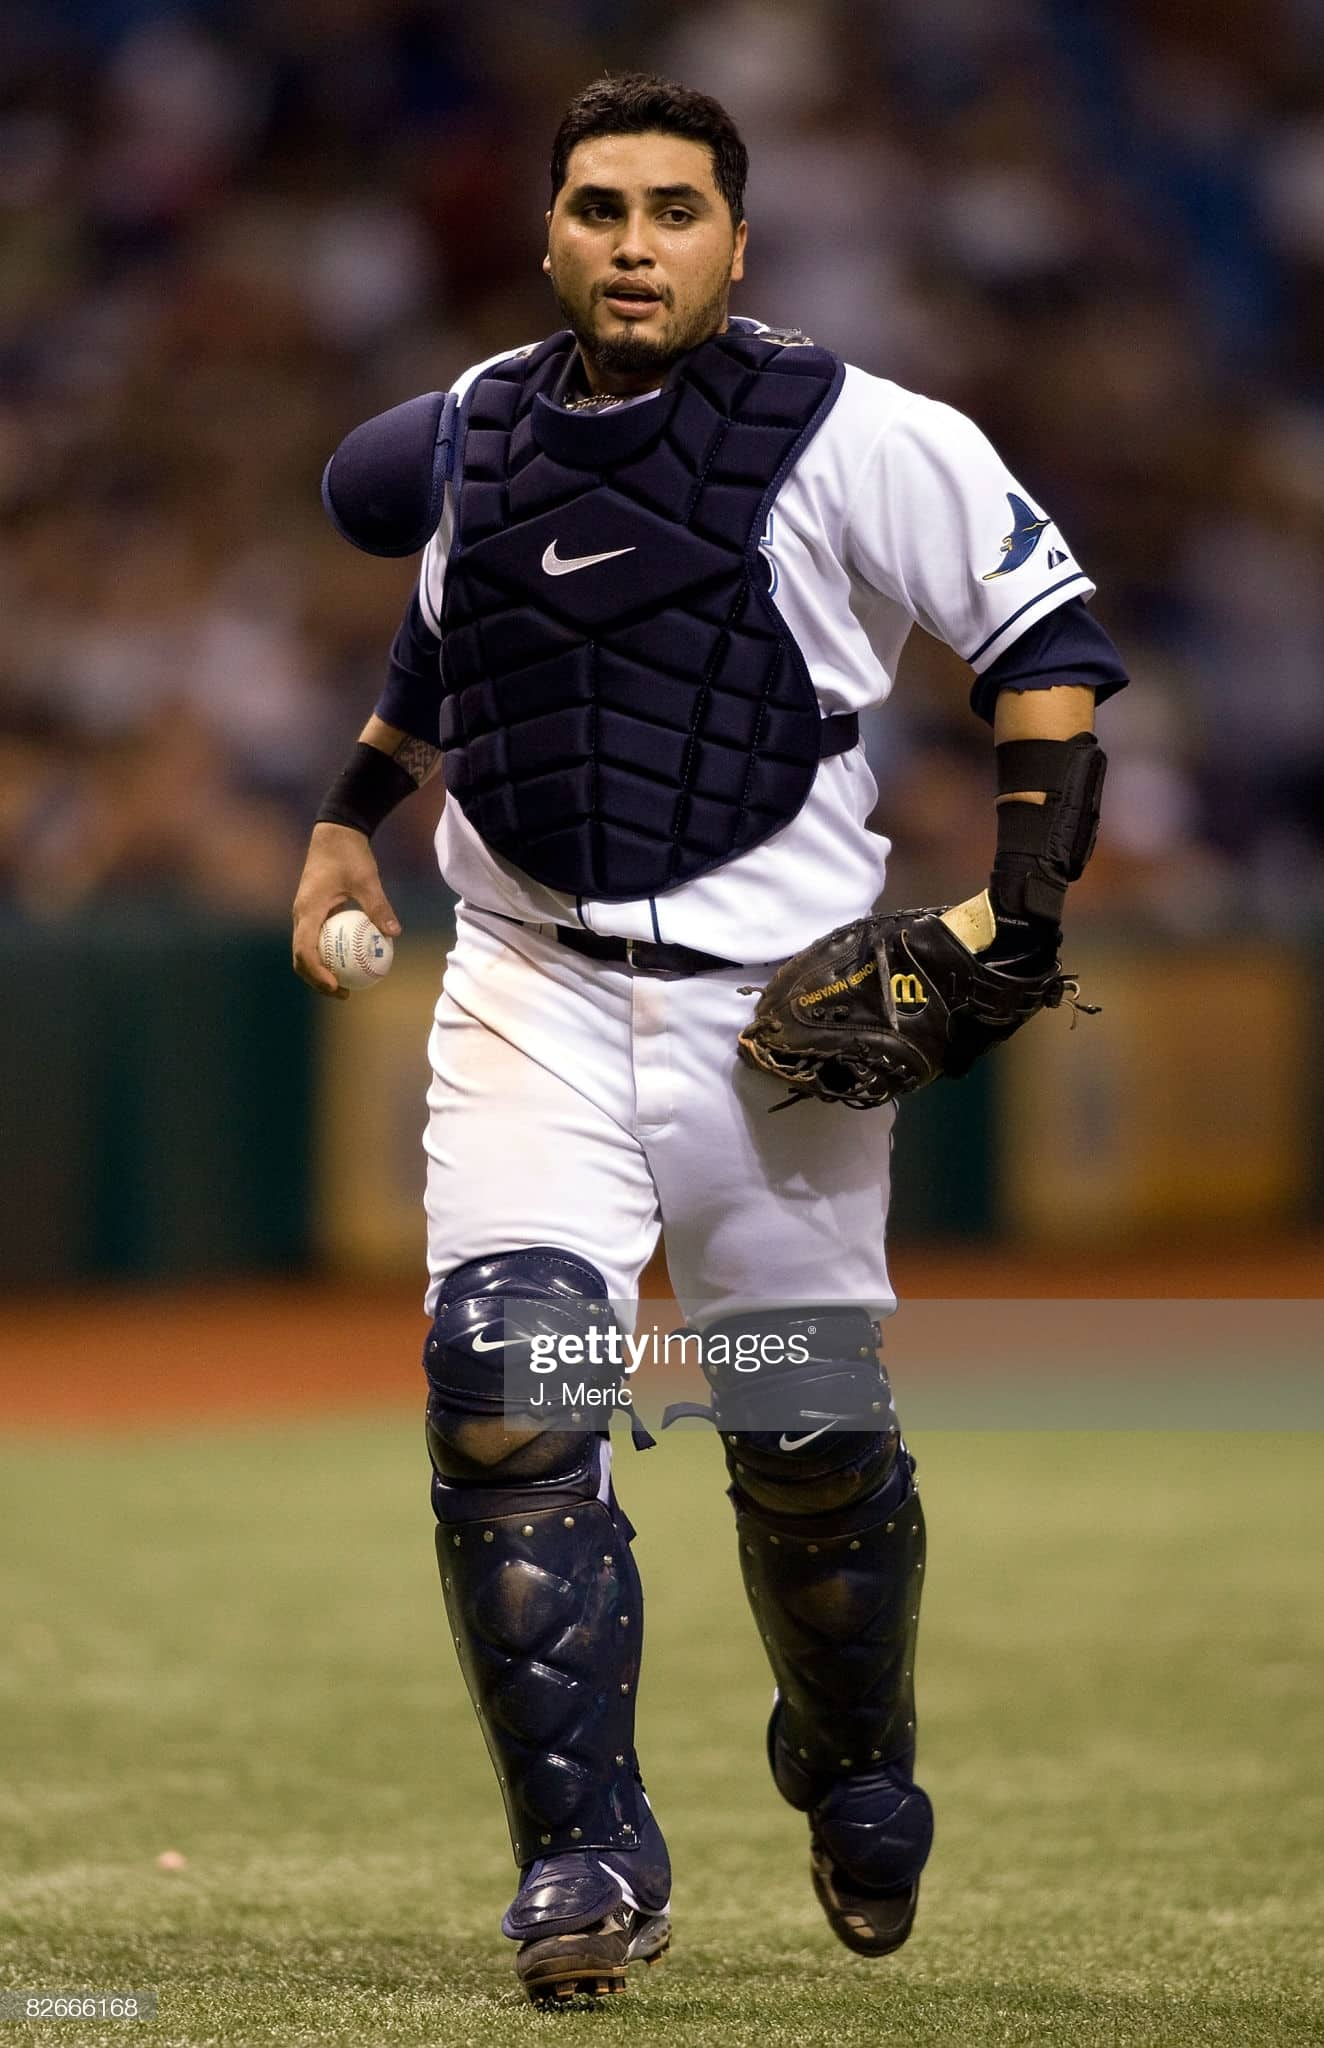 Former Rays catcher Dioner Navarro during a 2008 game